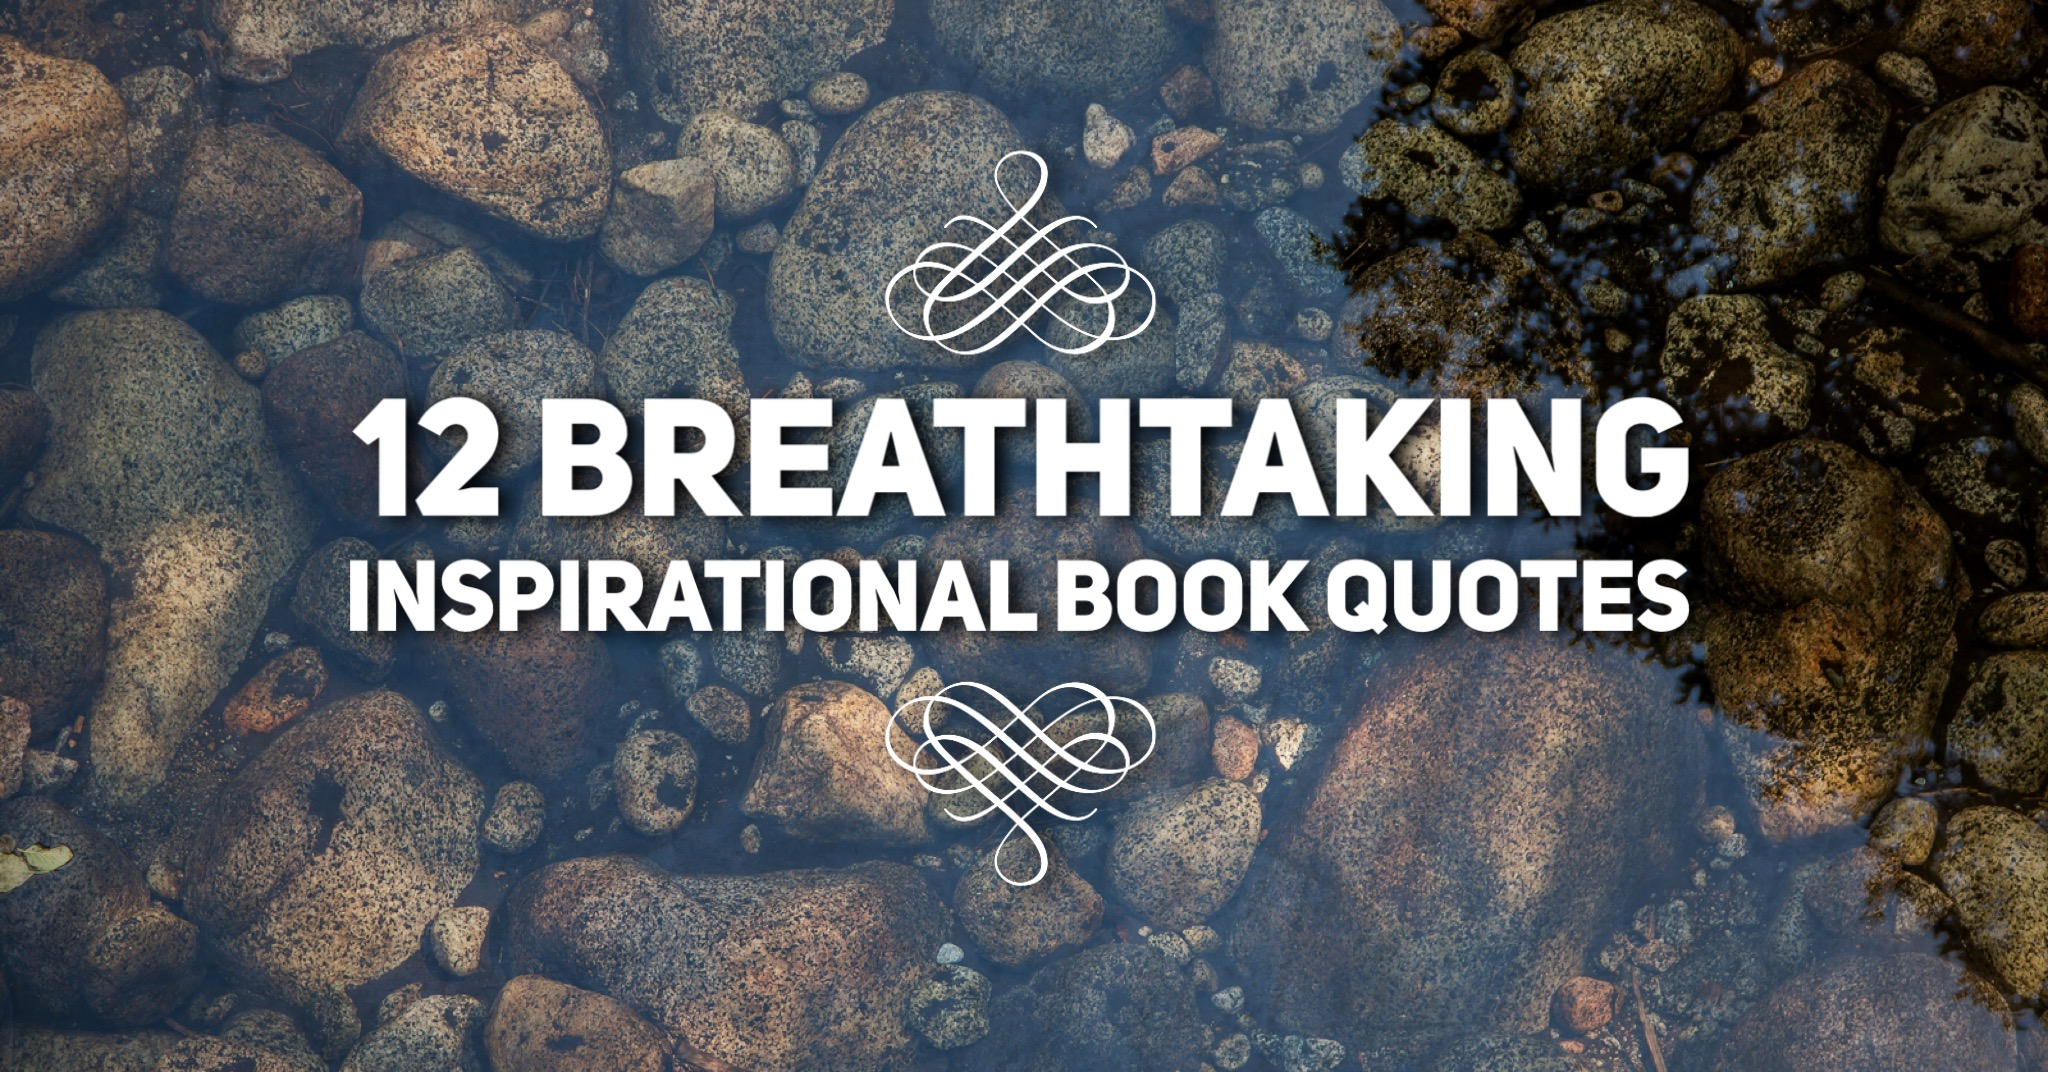 breathtaking inspirational book quotes